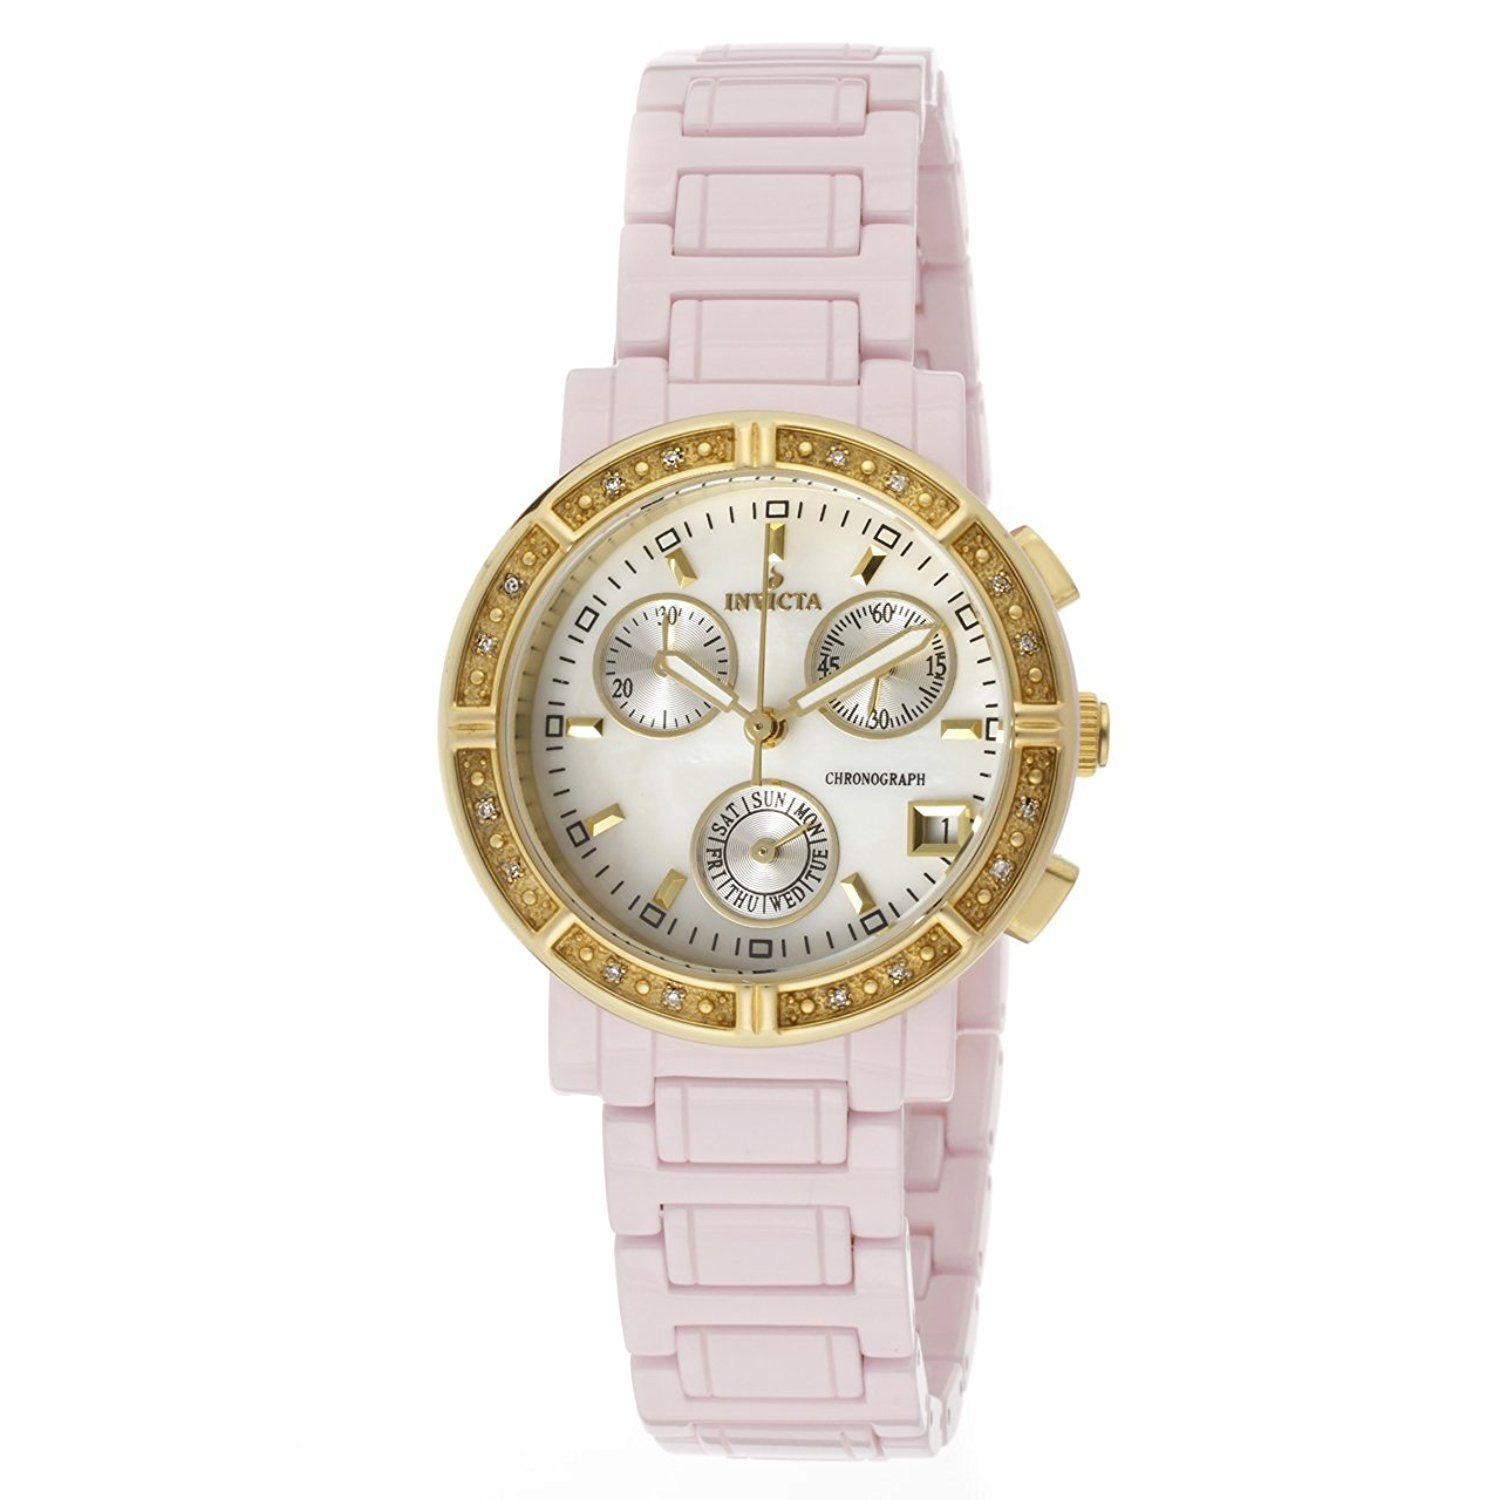 6a176a0cdb6d Invicta Women s 10319 Ceramics Diamond Accented Chronograph White Mother-Of-Pearl  Dial Pink Ceramic